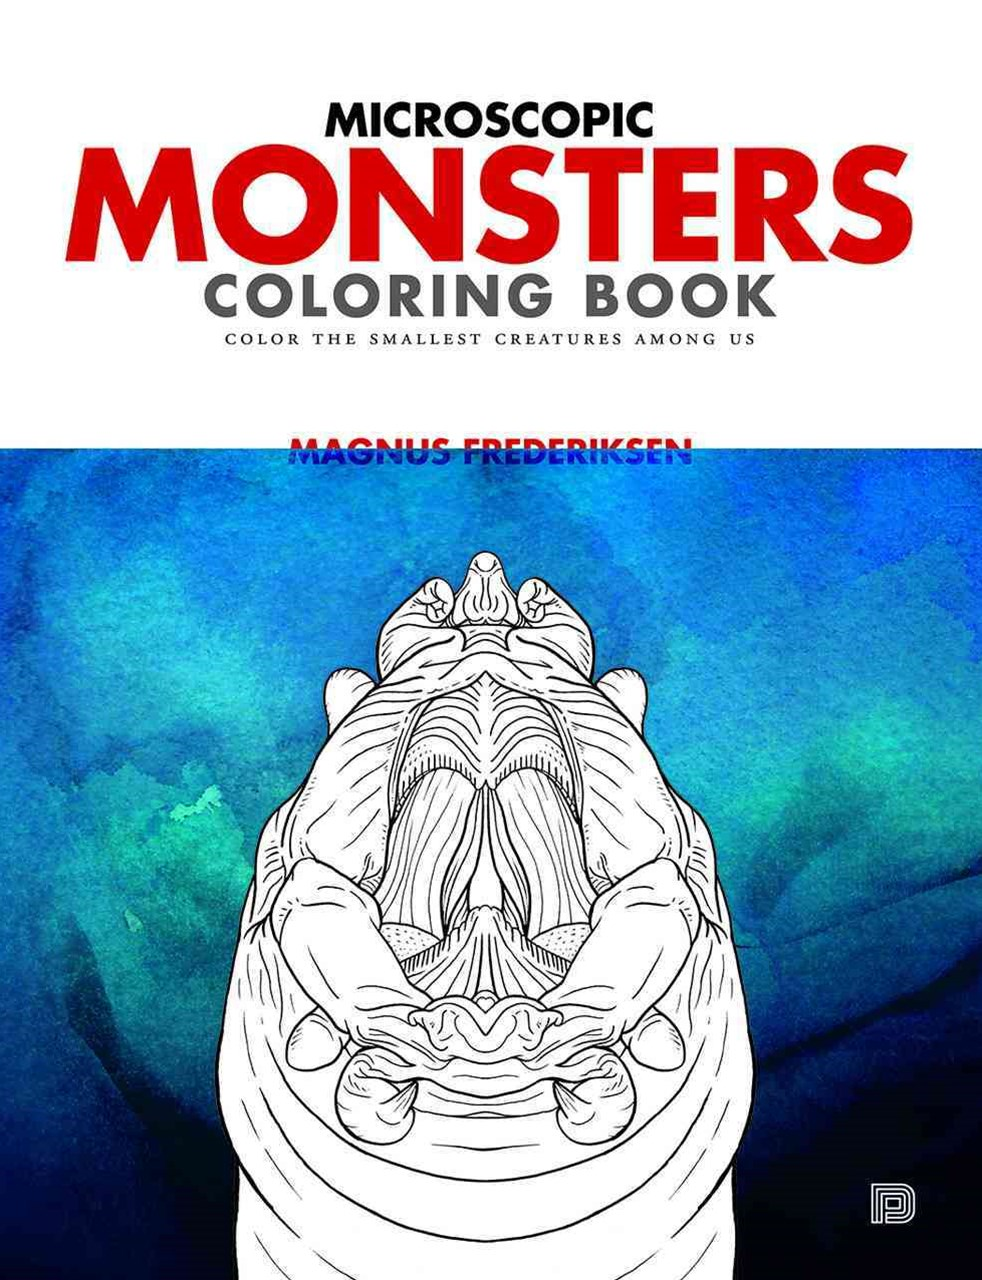 Microscopic Monsters Coloring Book